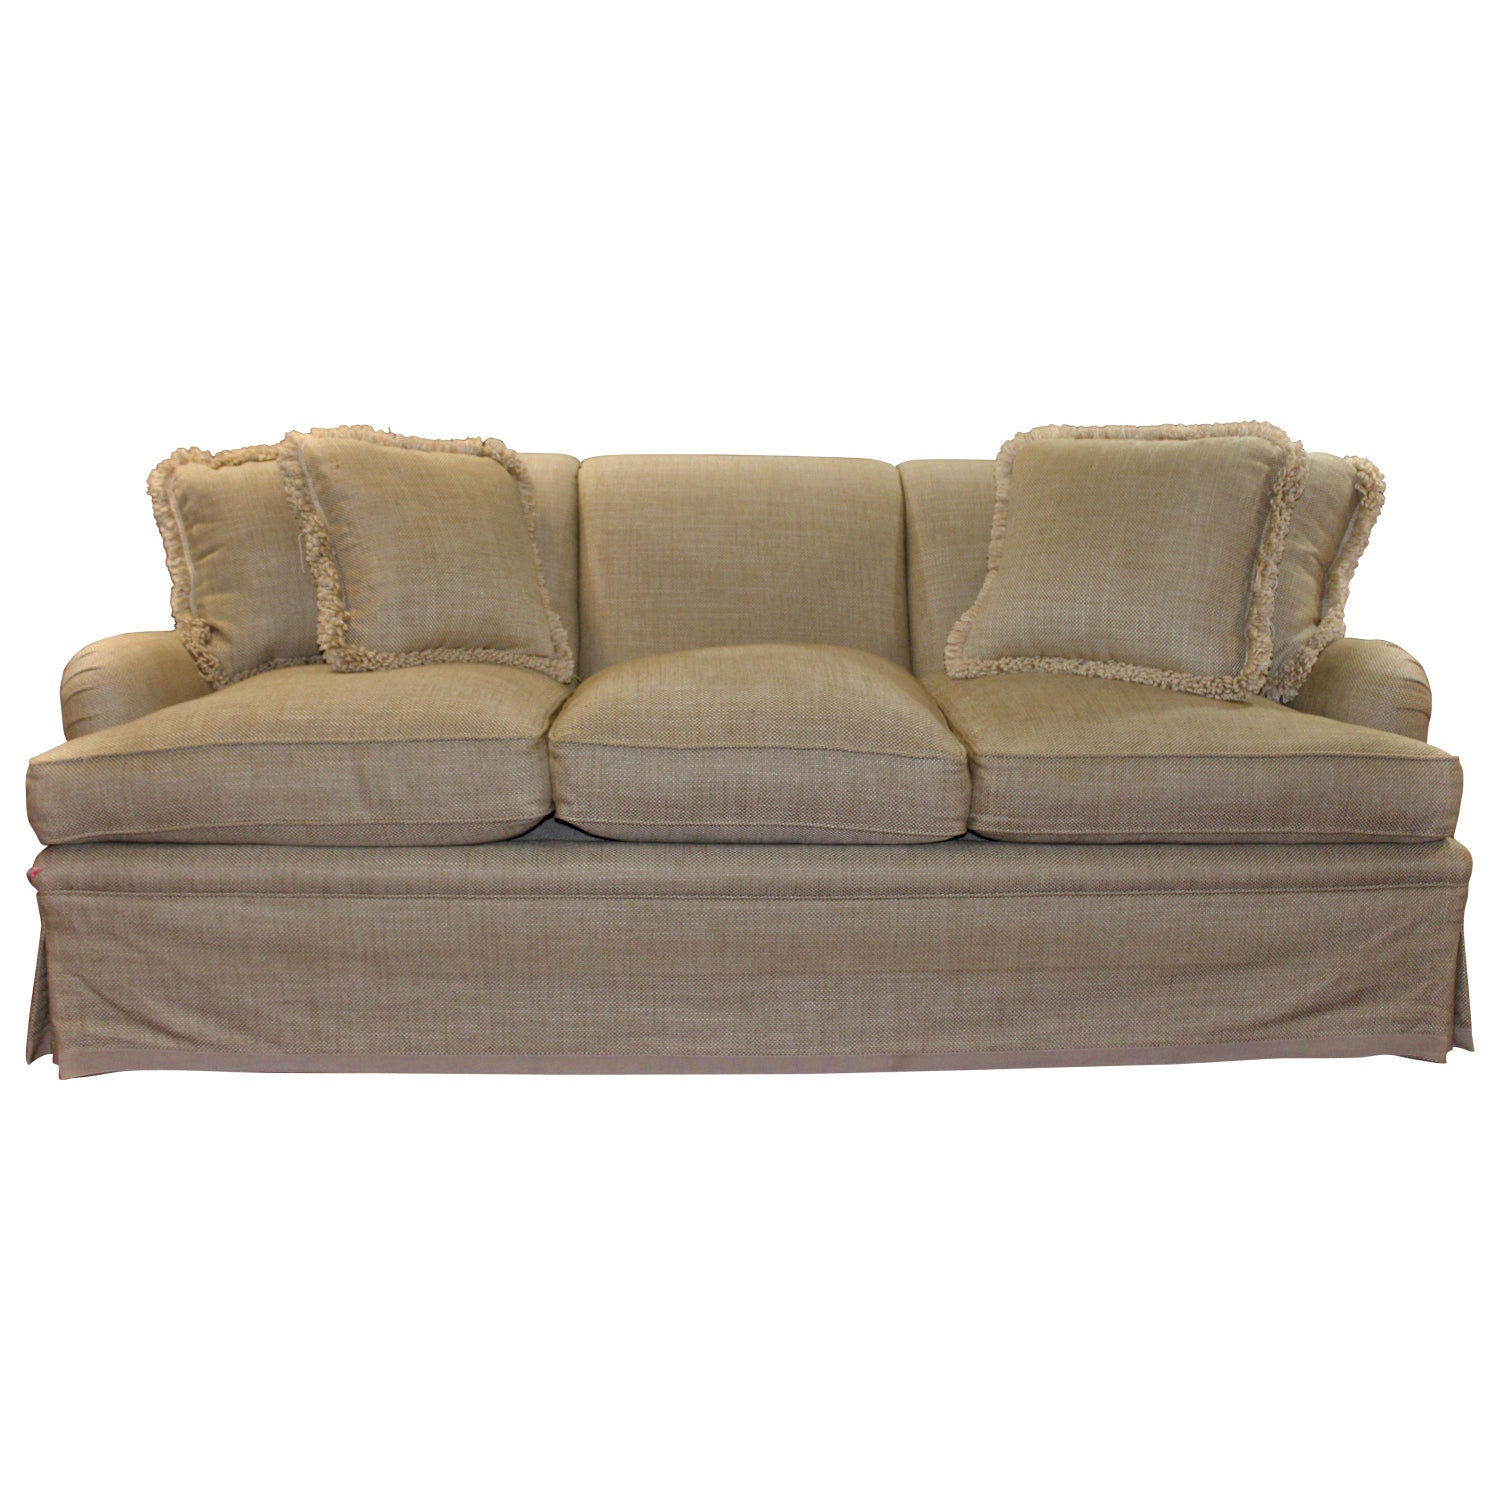 Elegant And Very Comfortable Bridgewater Style Sofa In Off White Linen